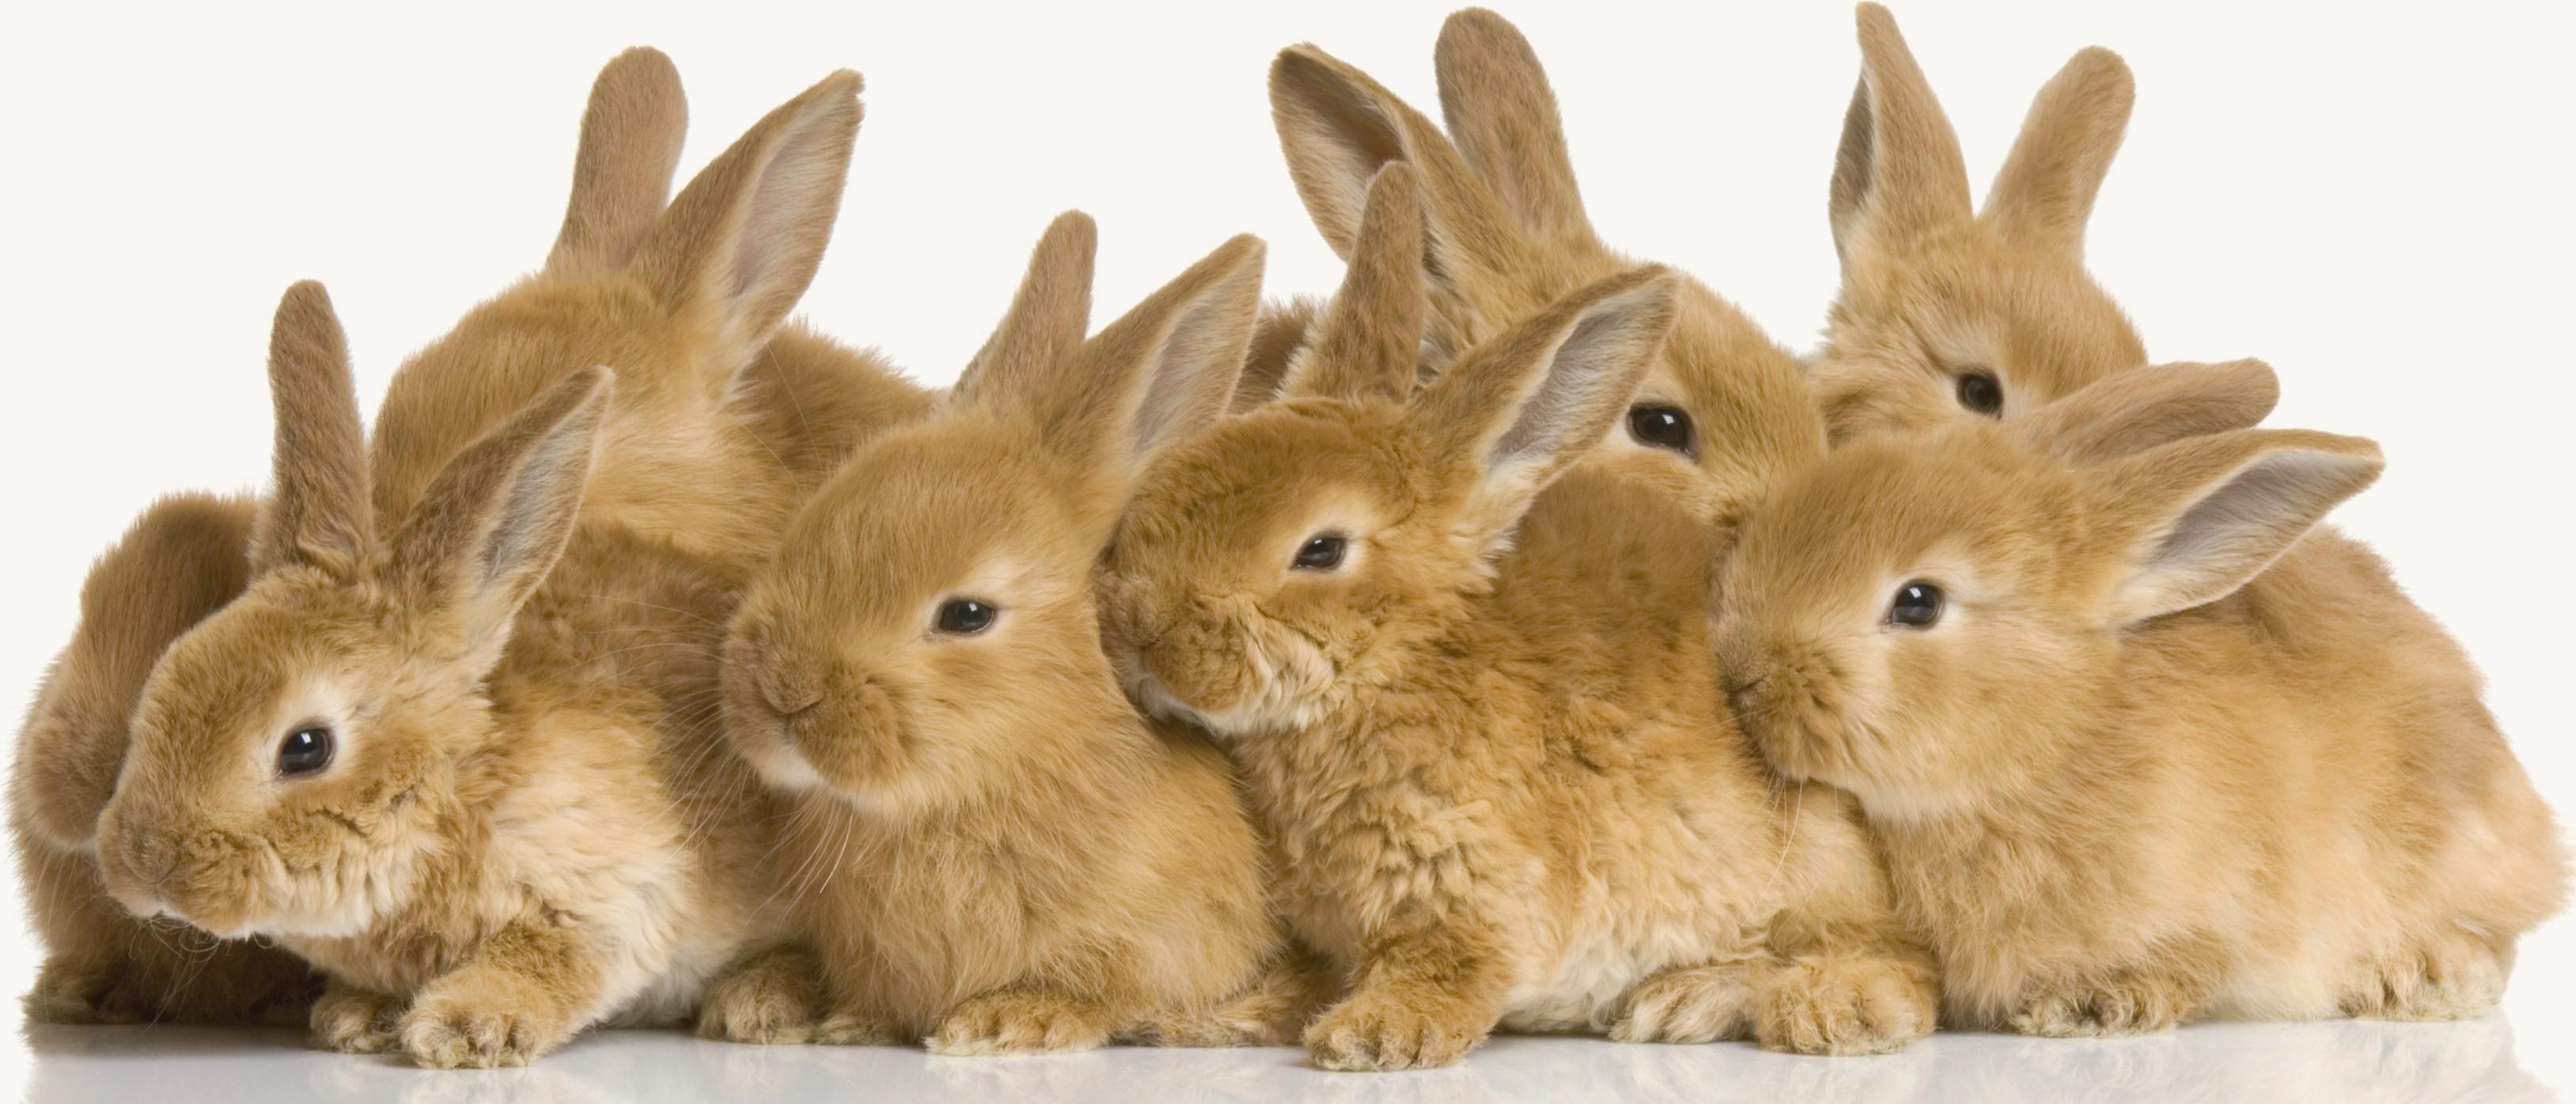 Rabbit wallpapers HD quality